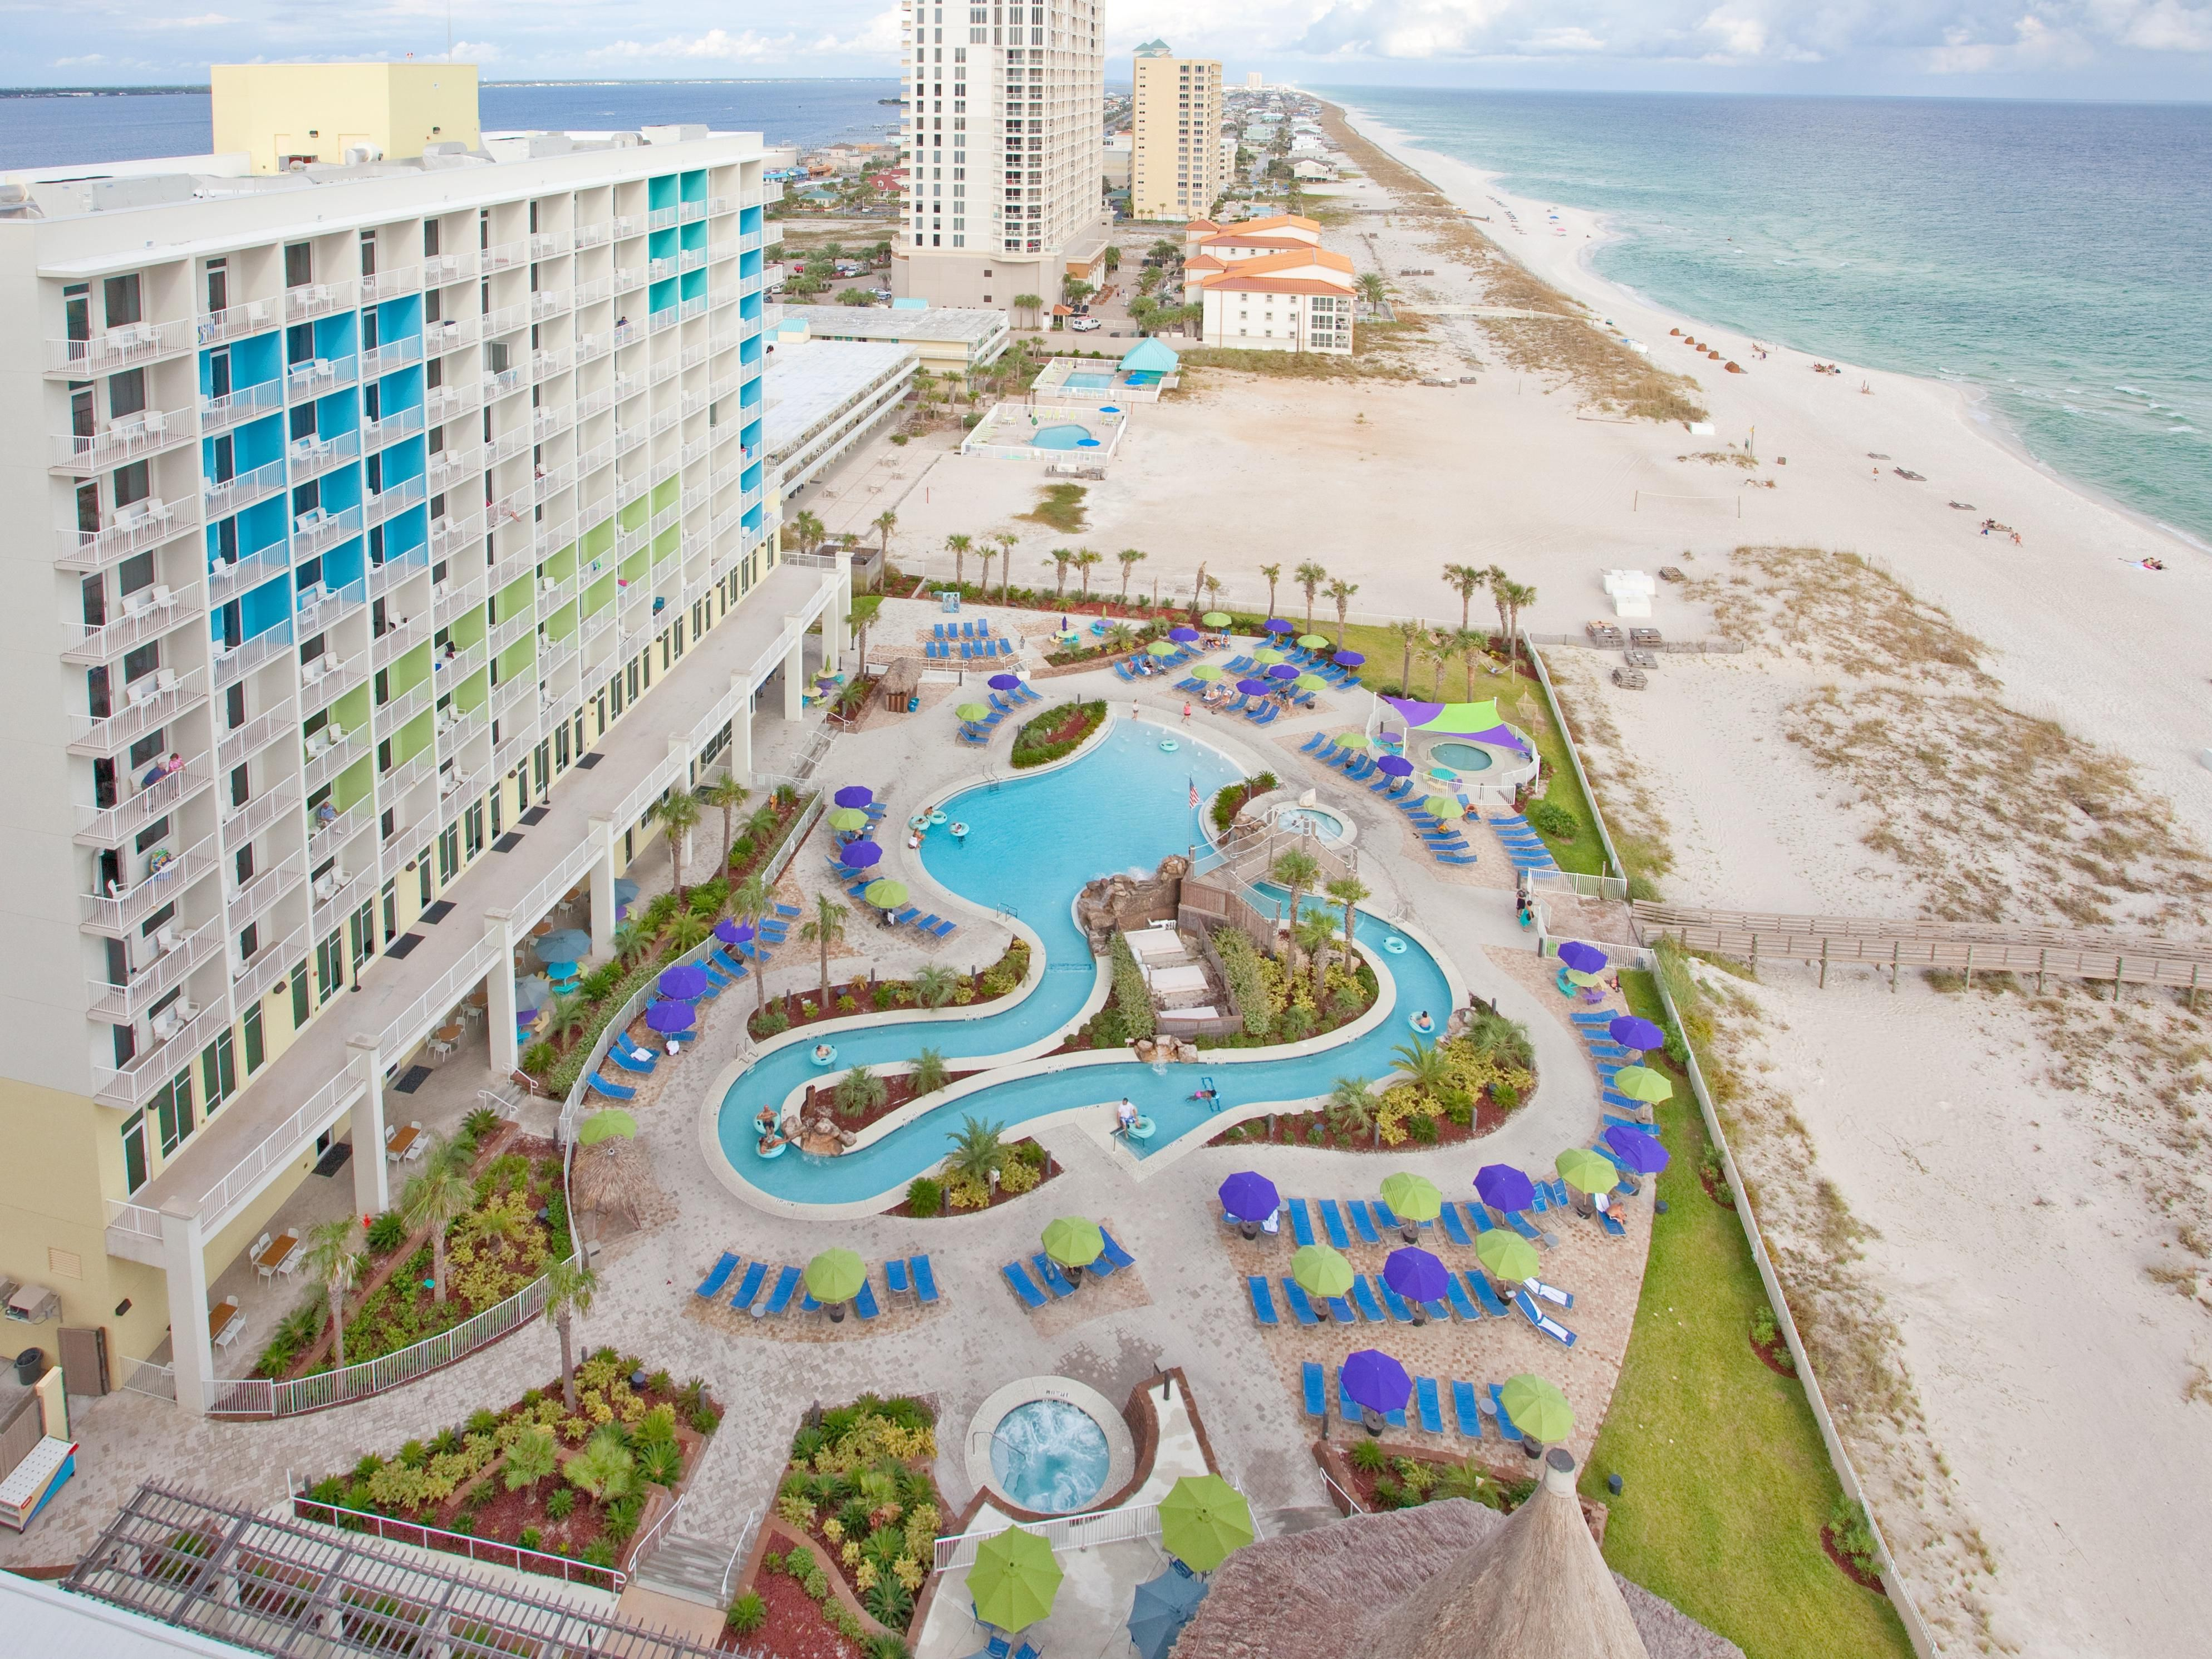 Find This Pin And More On Florida Panhandle Official Site Of Holiday Inn Resort Pensacola Beach Gulf Front